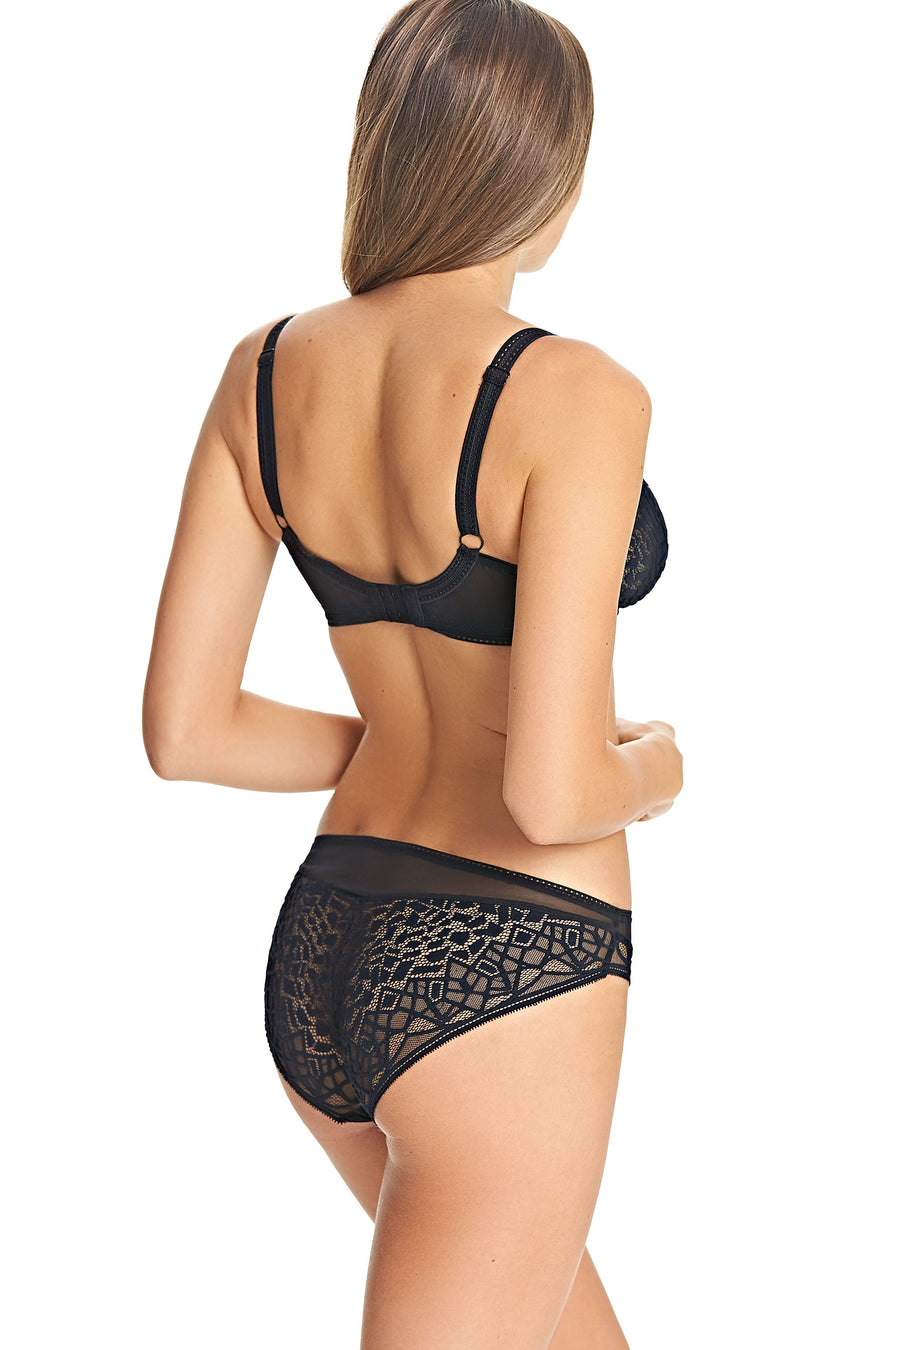 Soiree Lace Black Brief